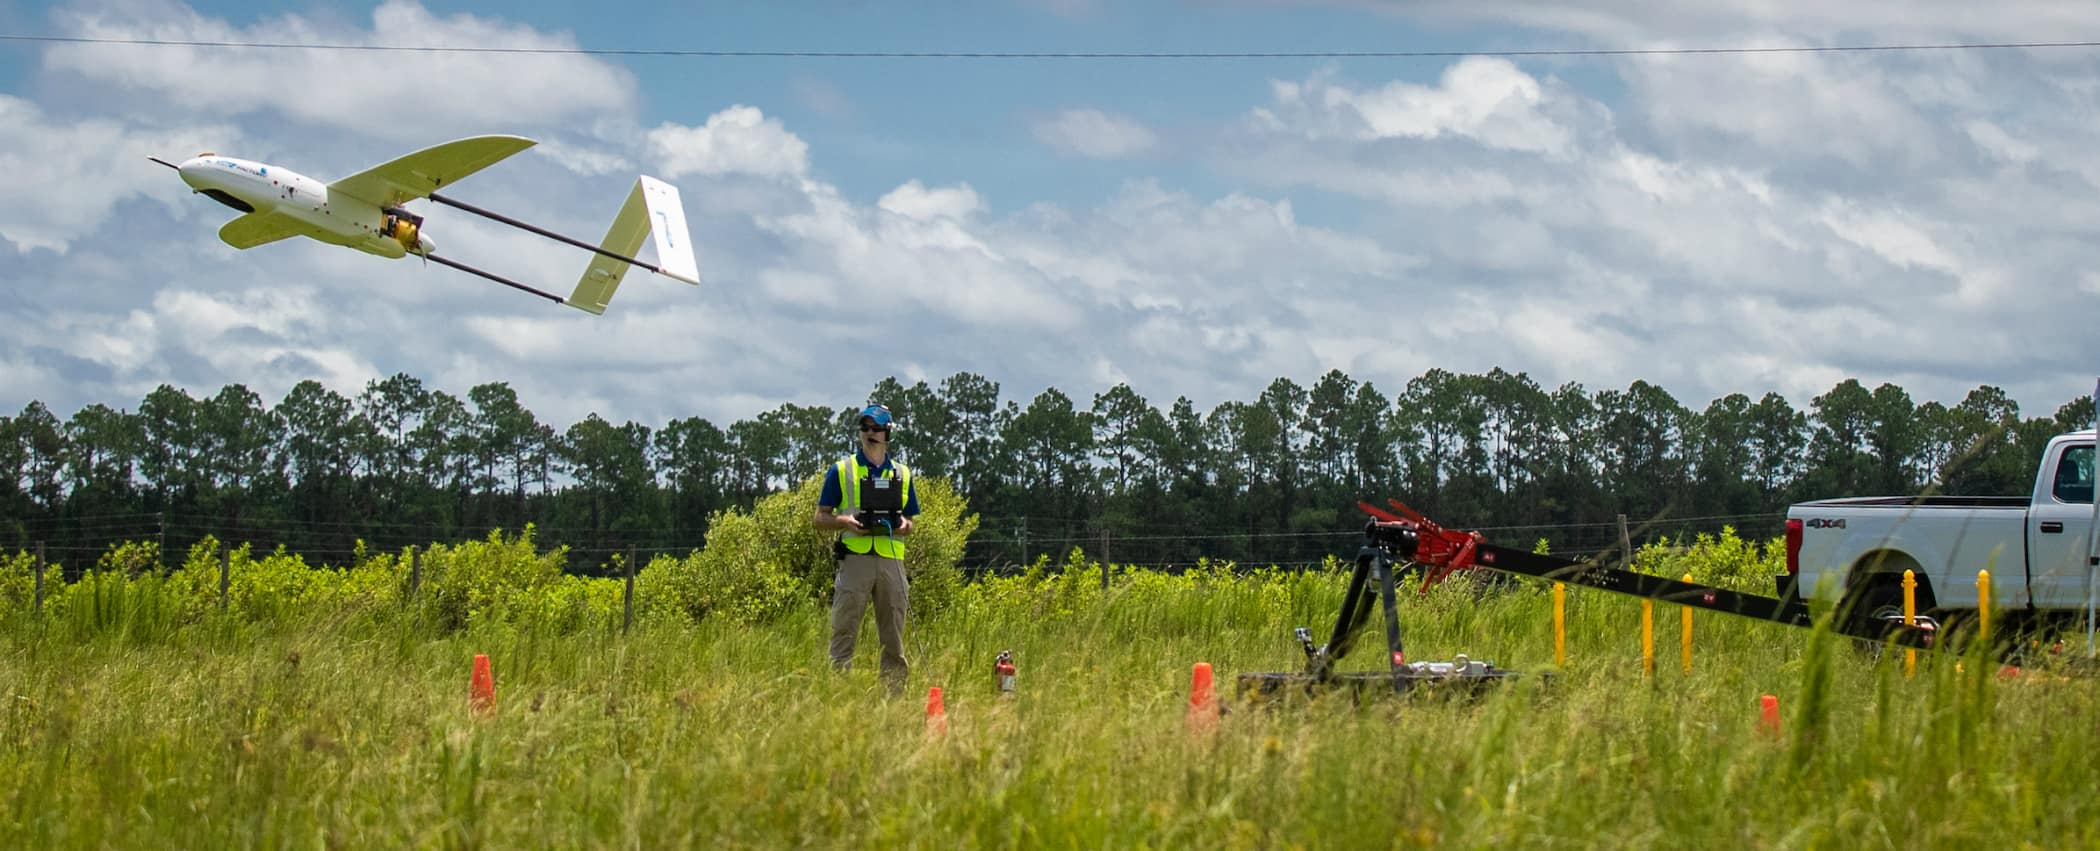 Michael Zebehazy,  UAS Maintenance and Inventory Manager and Crew Chief, left and Austin Noble, student and lab assistant launch the Penguin C UAV platform